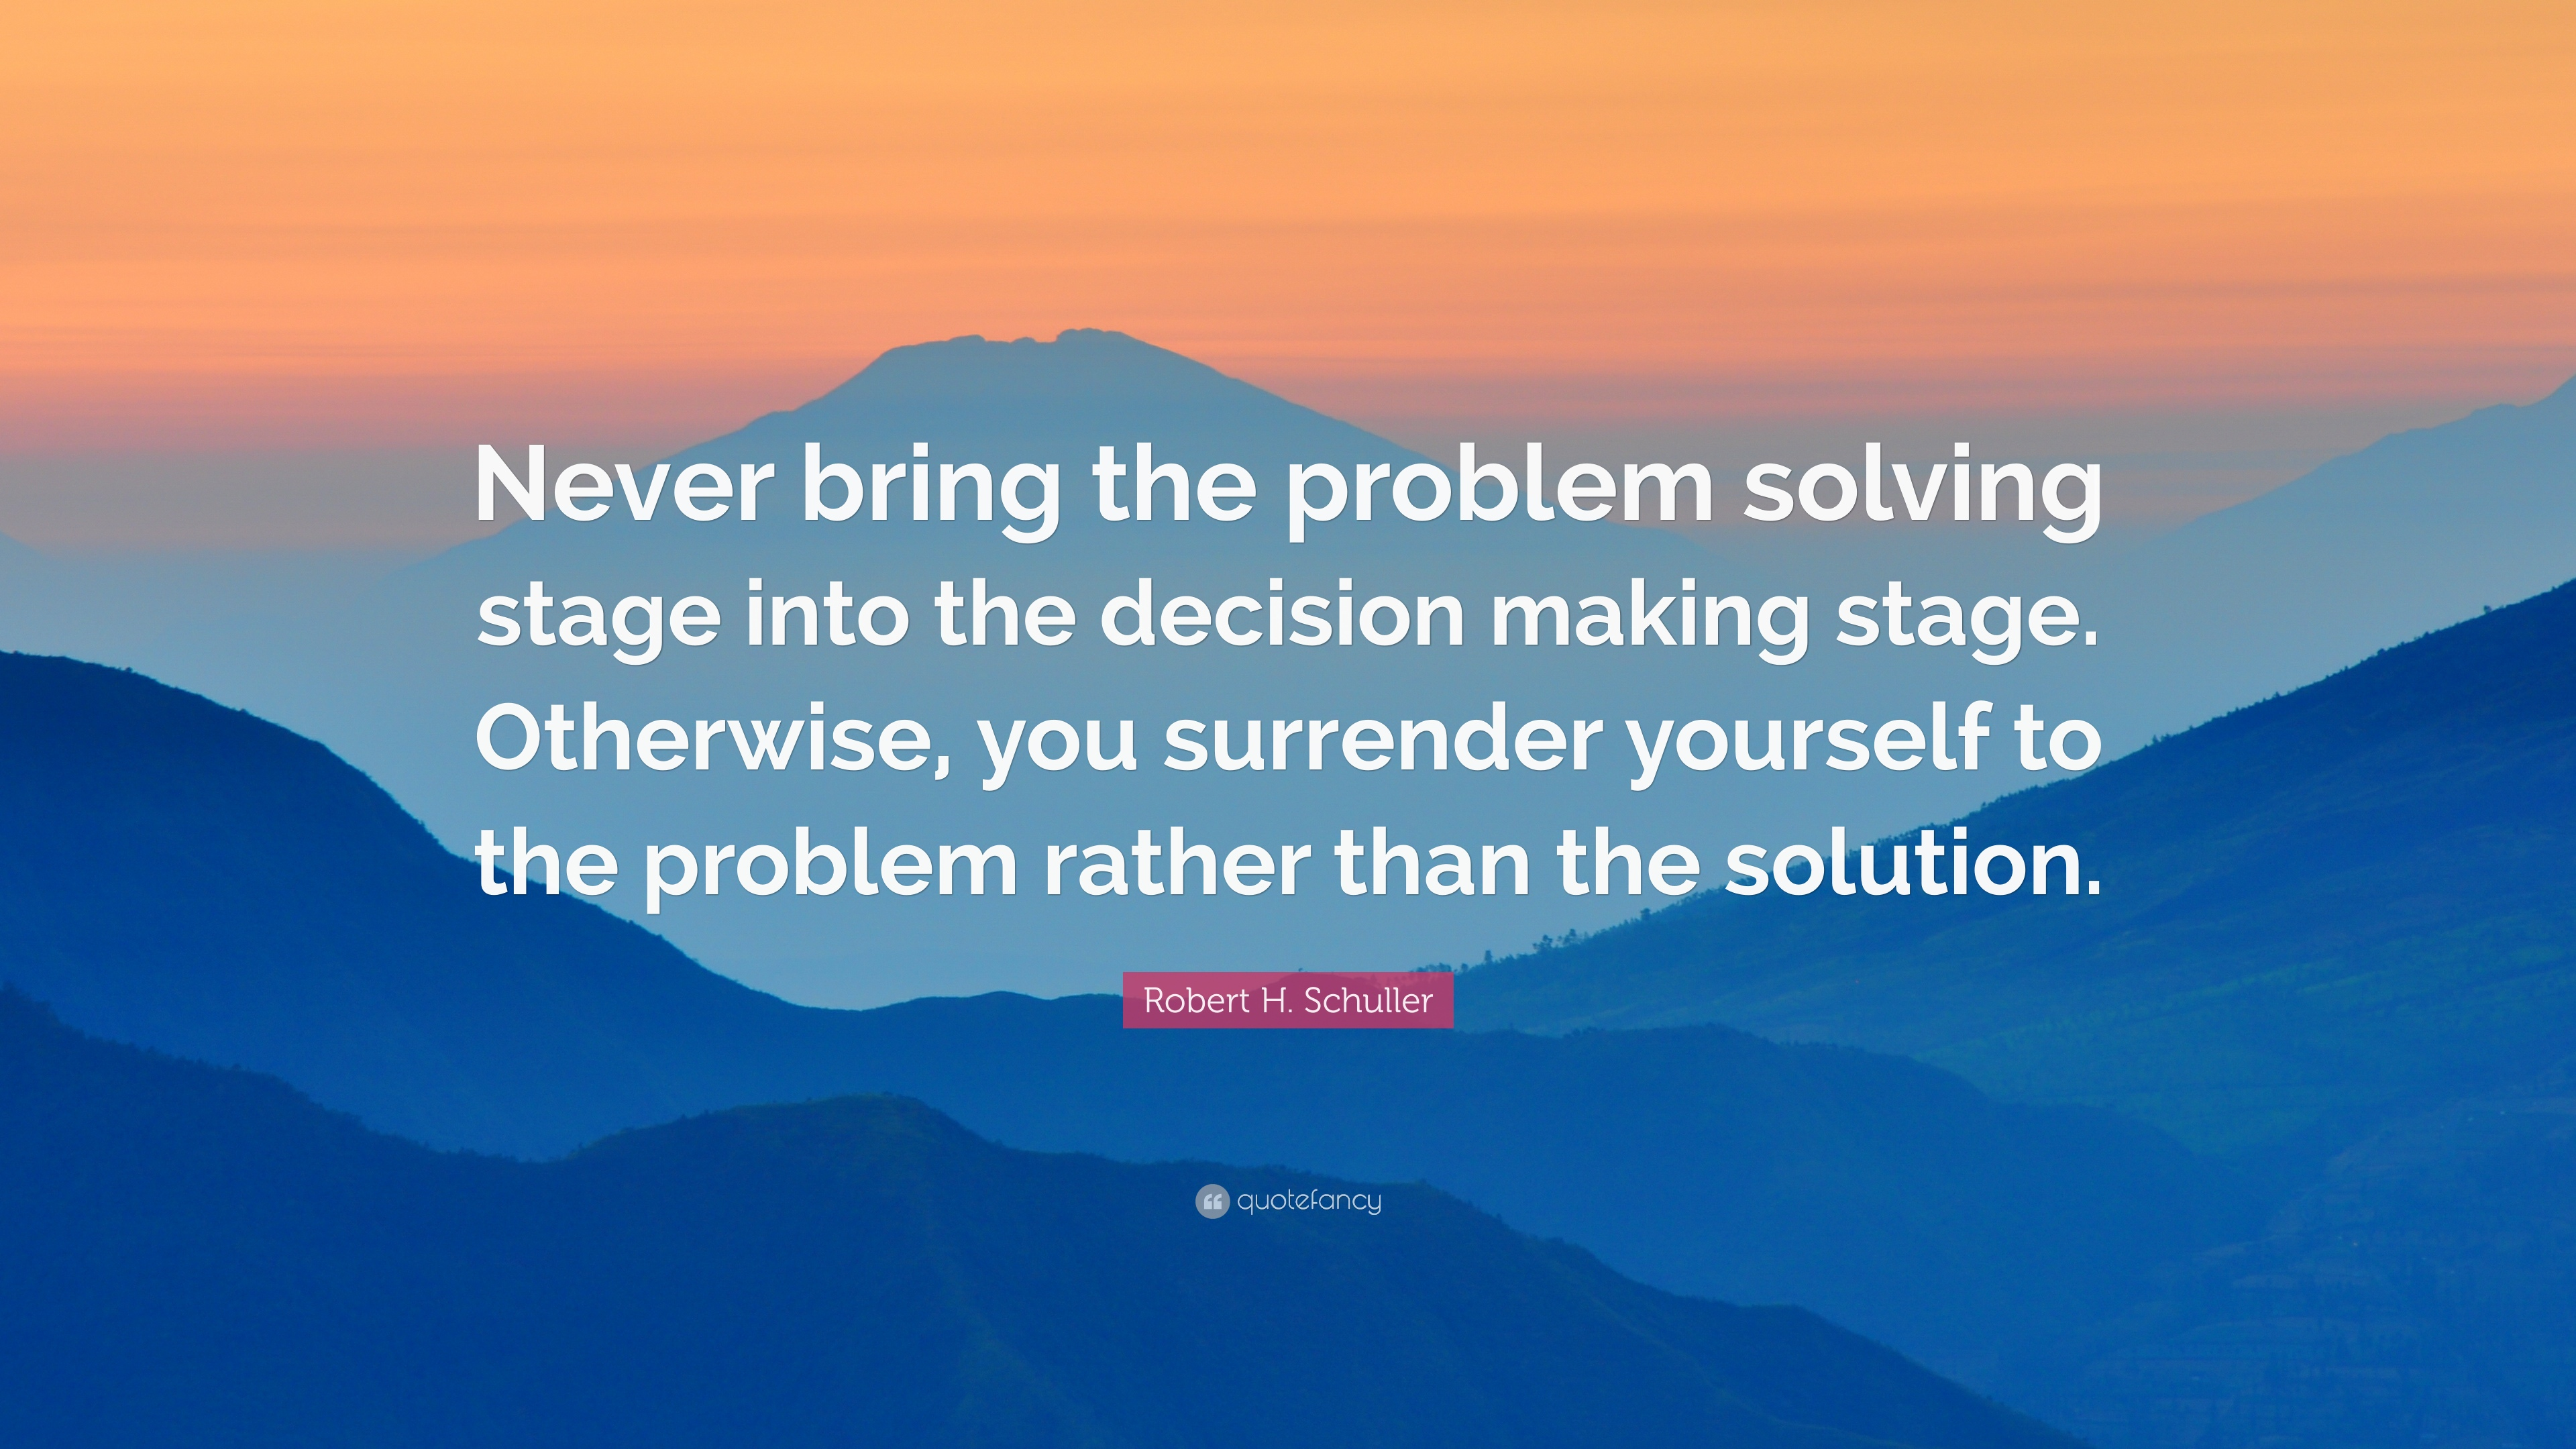 Robert H Schuller Quote Never Bring The Problem Solving Stage